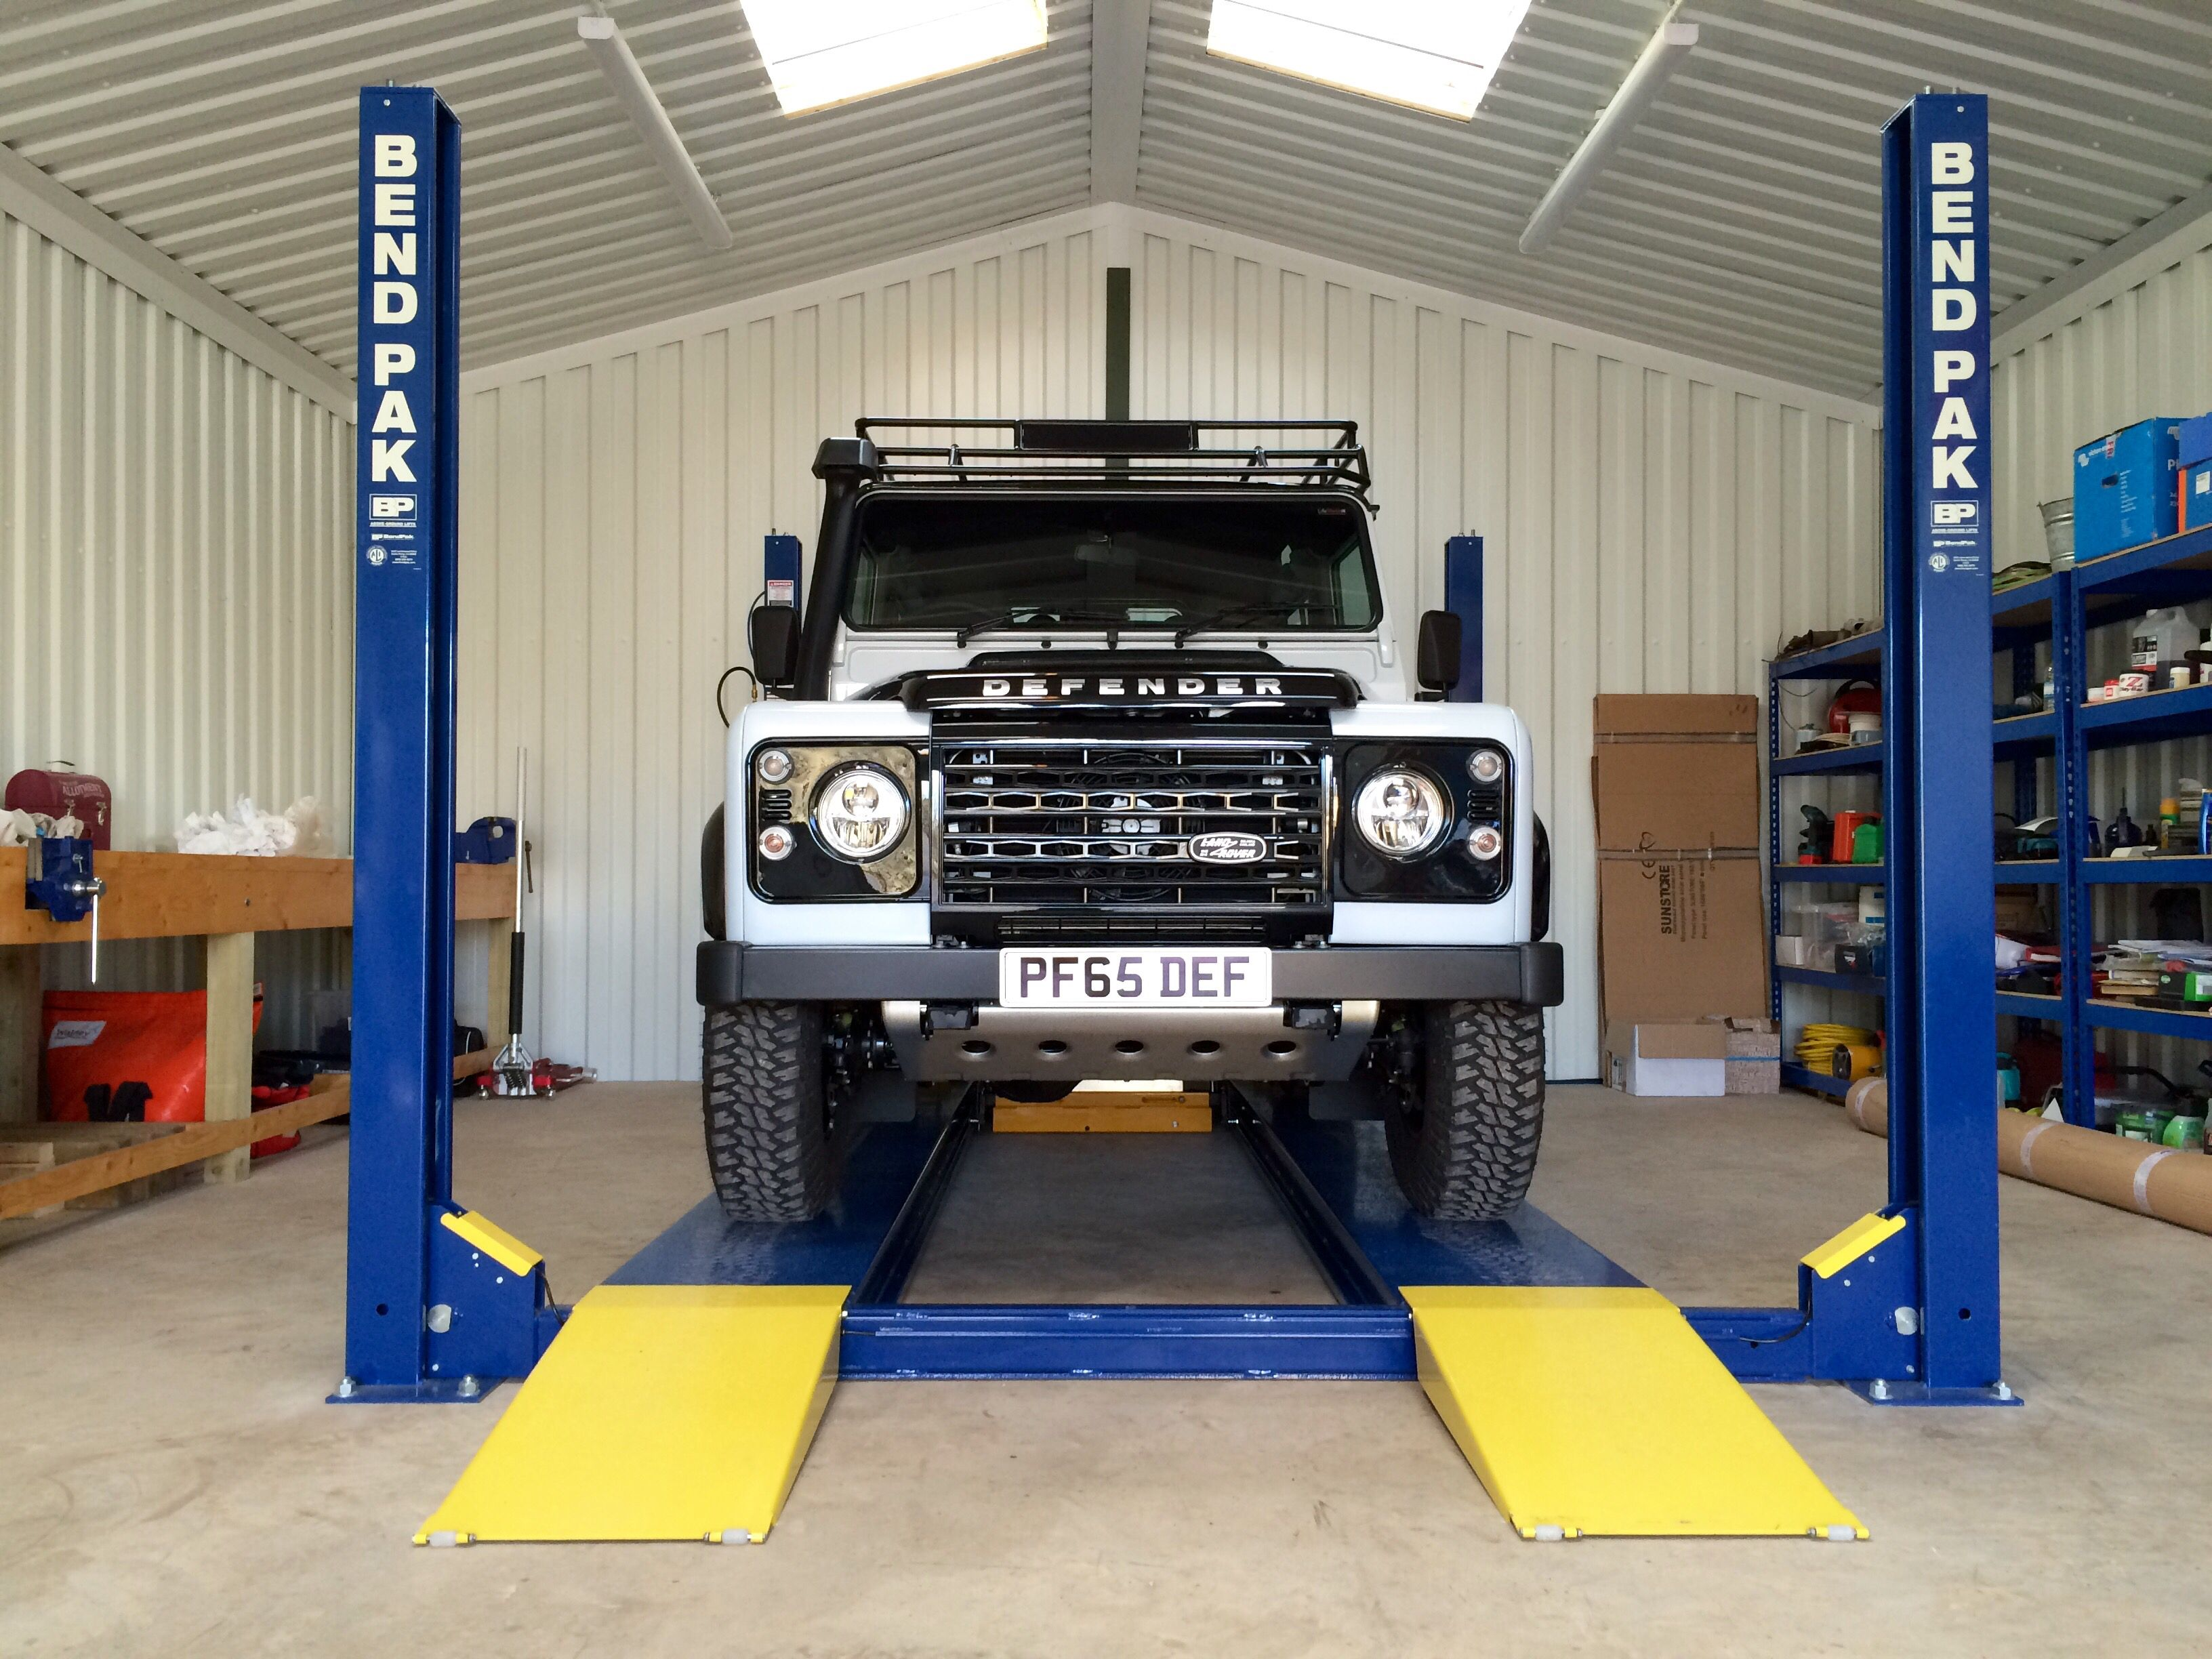 running on best pinterest garage images lift hd bendpak post and lifts trucks